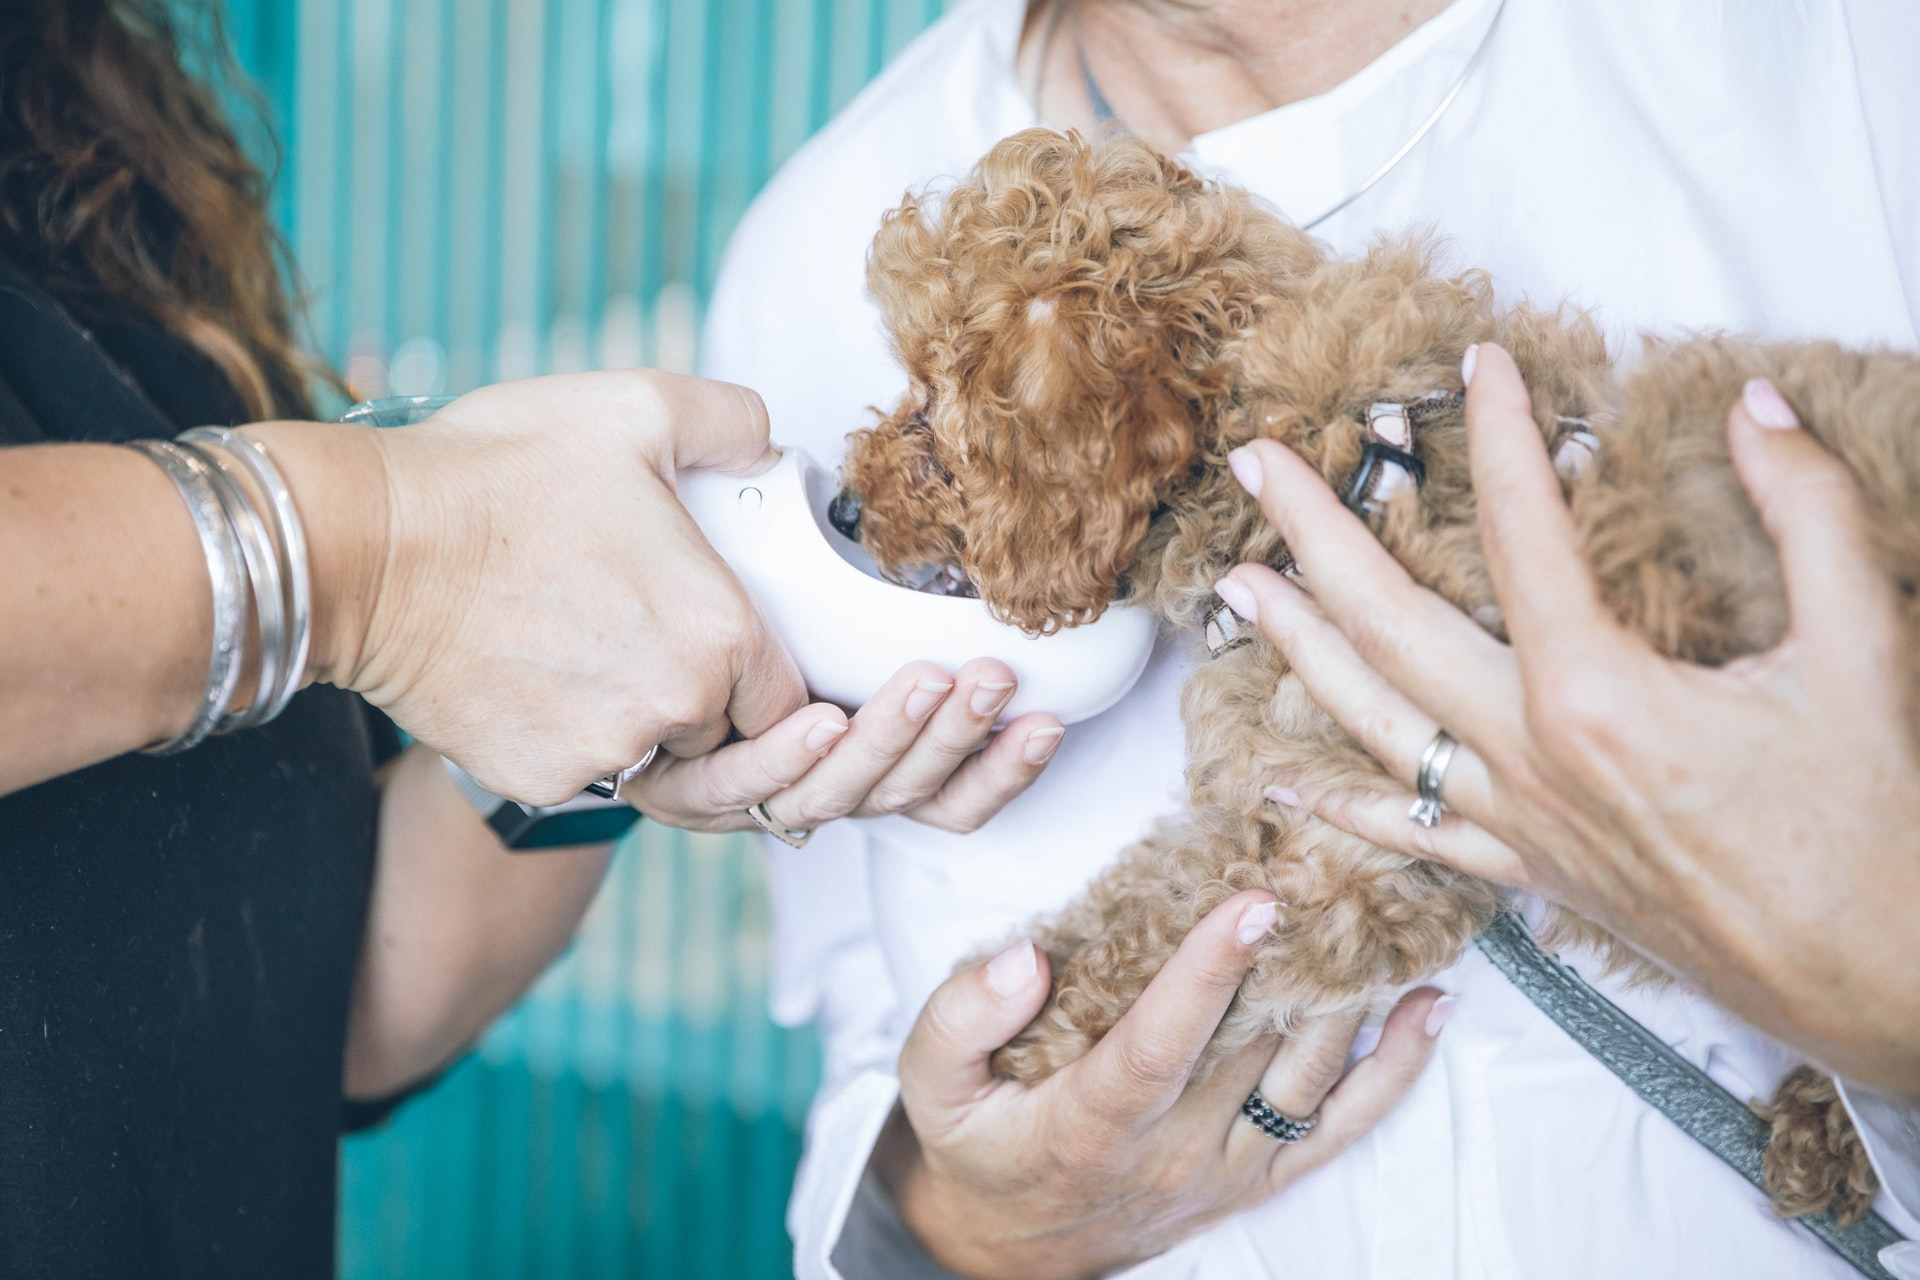 The Top 10 Online Payment & Billing Solutions for Veterinary & Pet Services